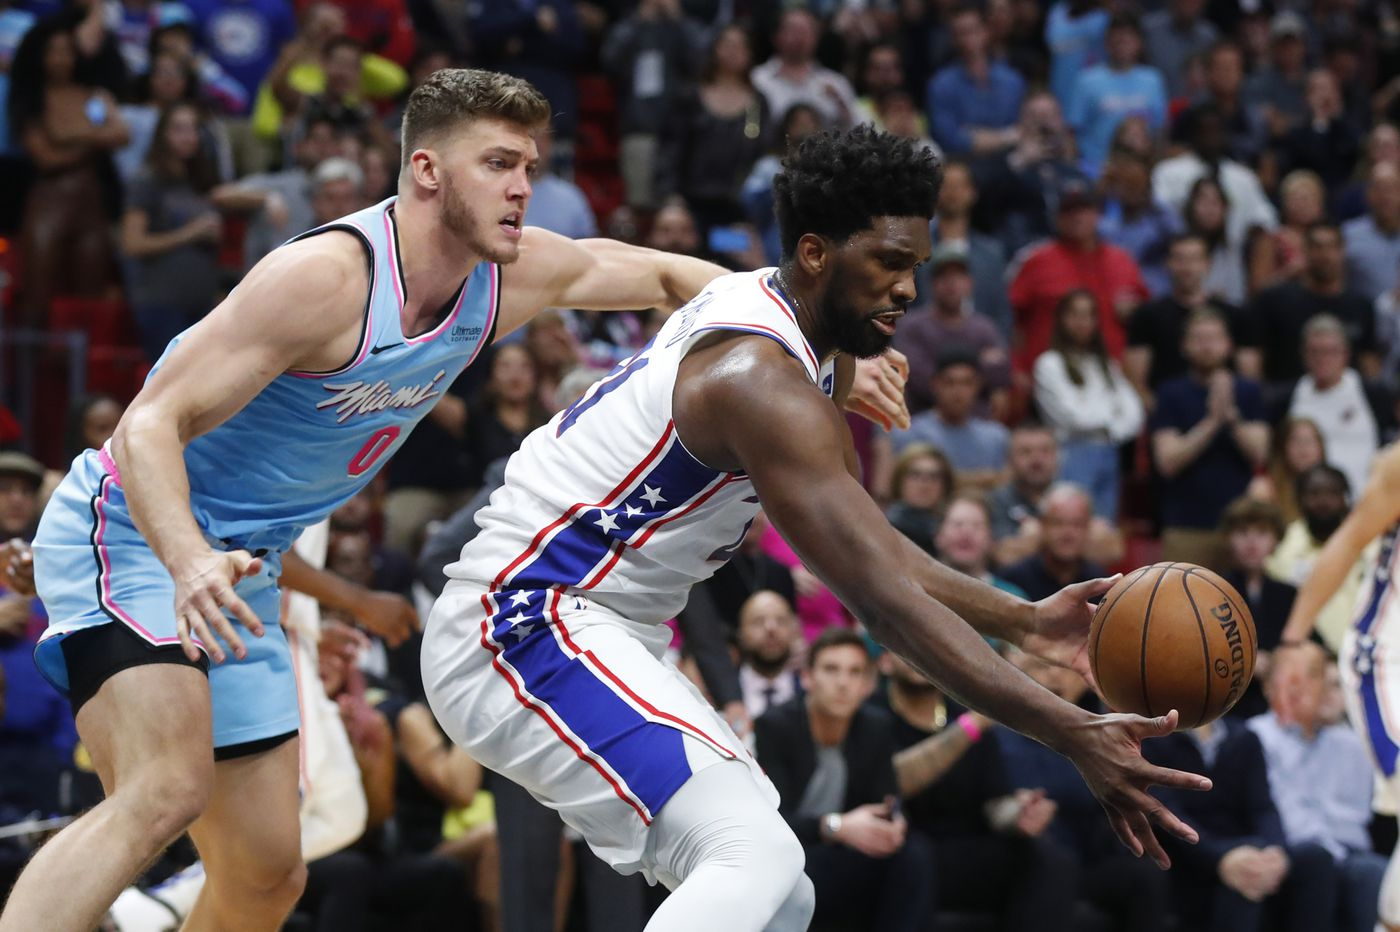 Sixers' road woes continue thanks to late miscues in loss to Heat